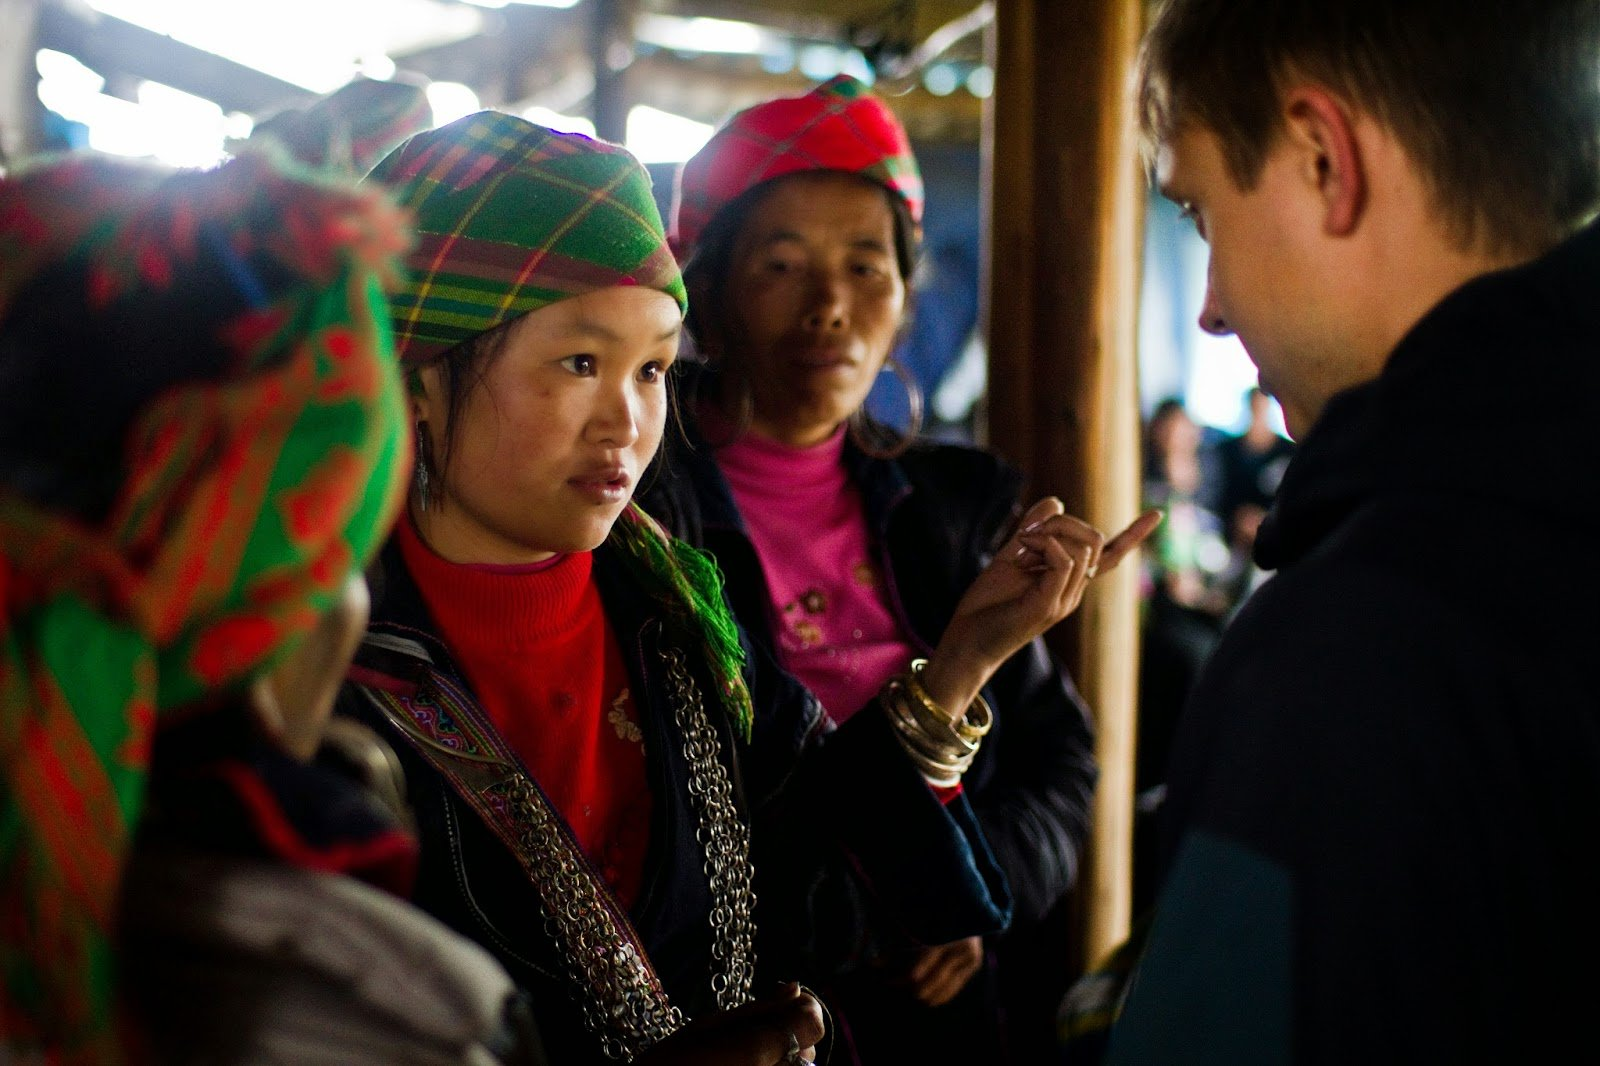 Hmong woman - interview